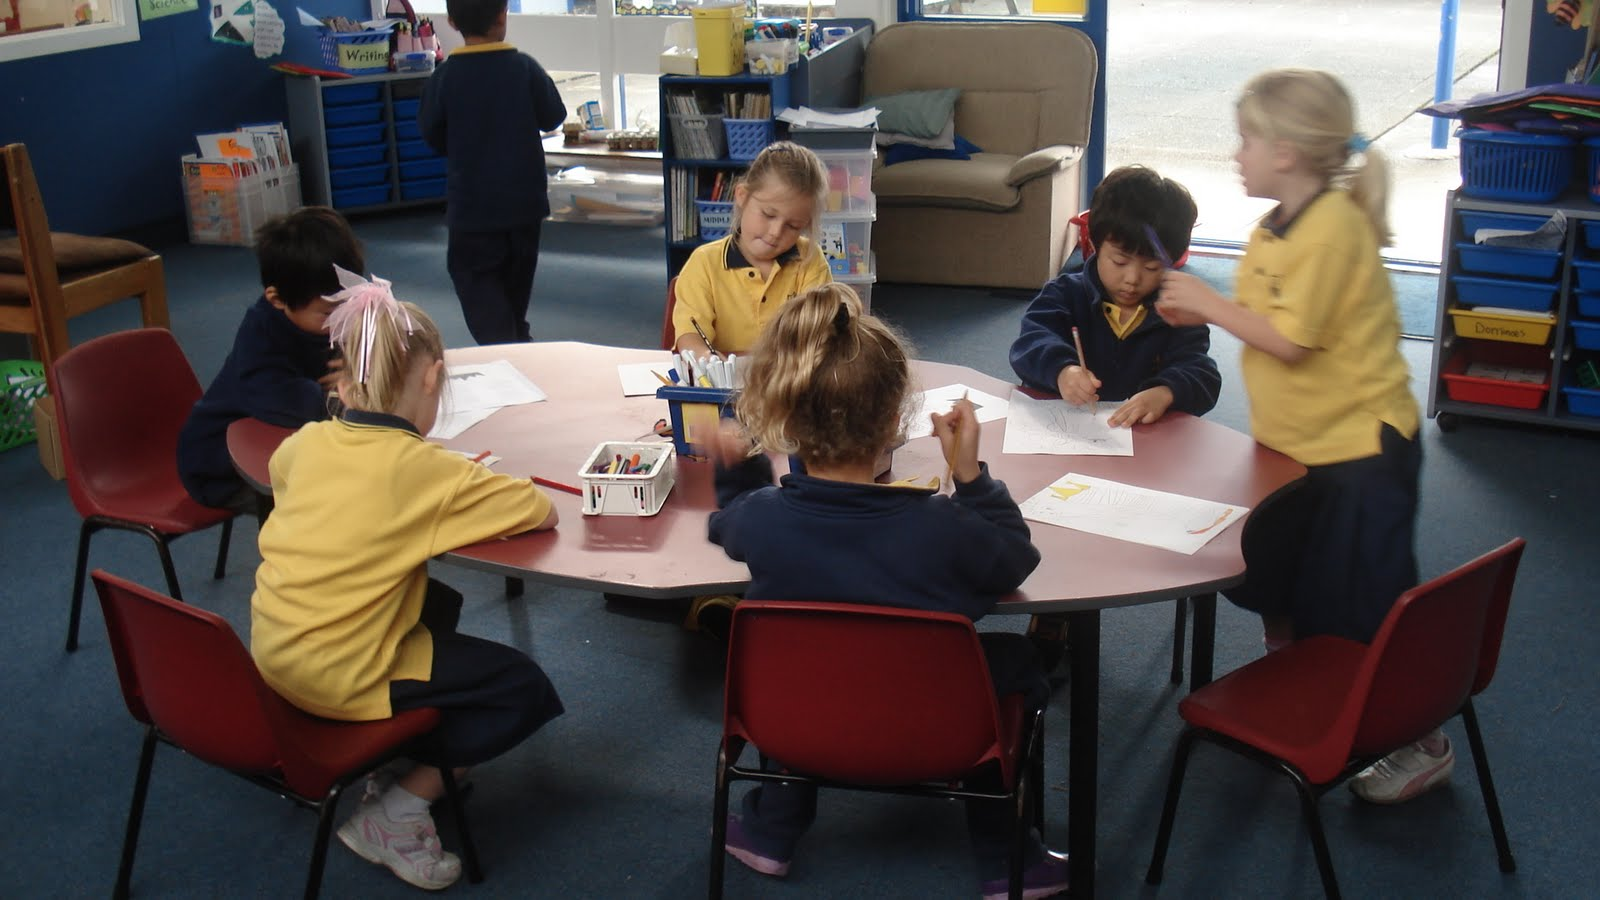 Collaborative Learning In Classroom Interaction ~ American teacher in auckland may